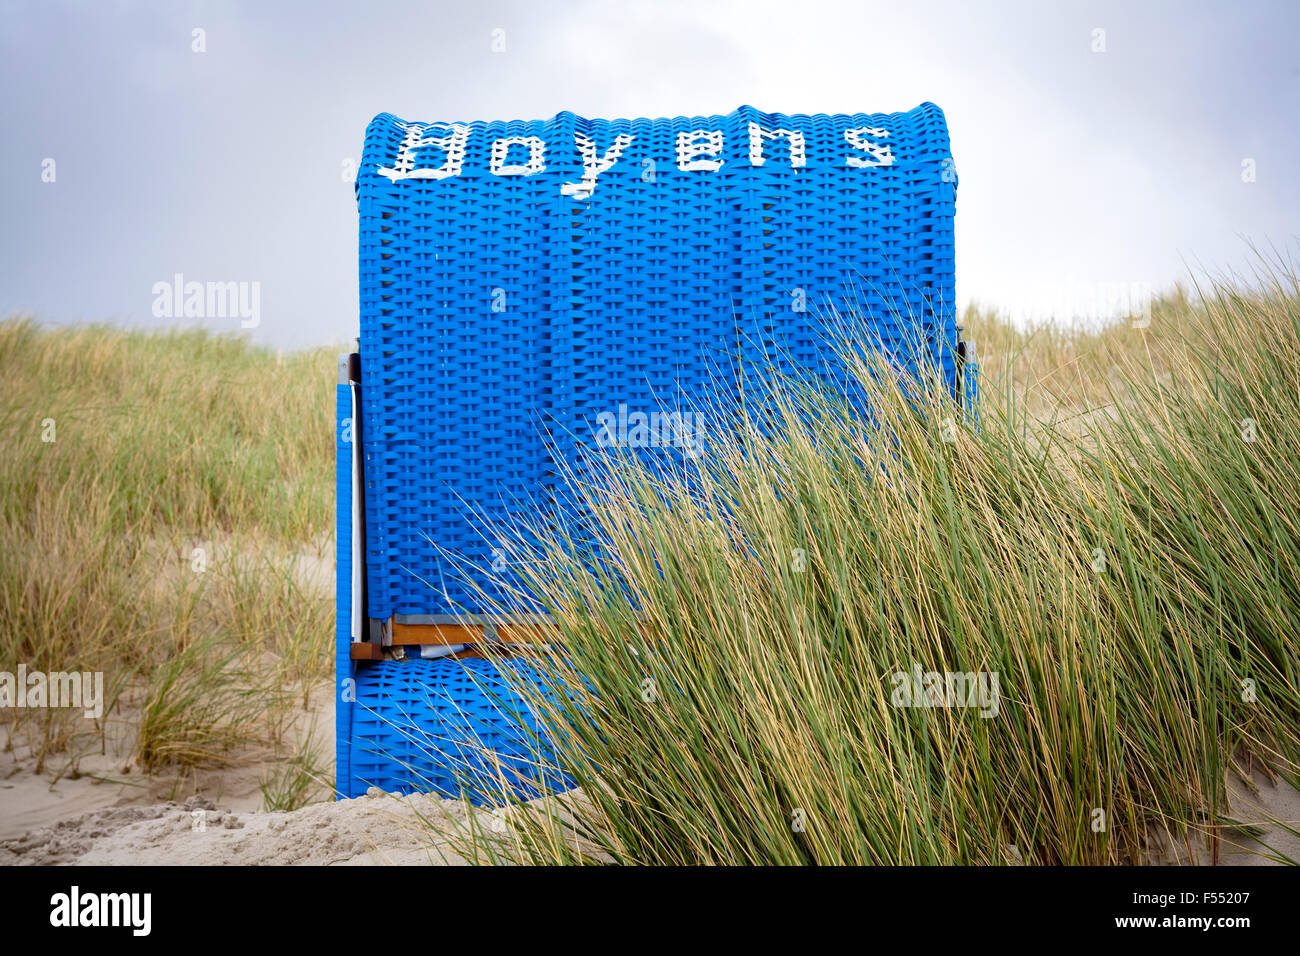 DEU, Germany, Schleswig-Holstein, North Sea,  Amrum island, beach chair in the dunes at the beach Kniepsand near - Stock Image